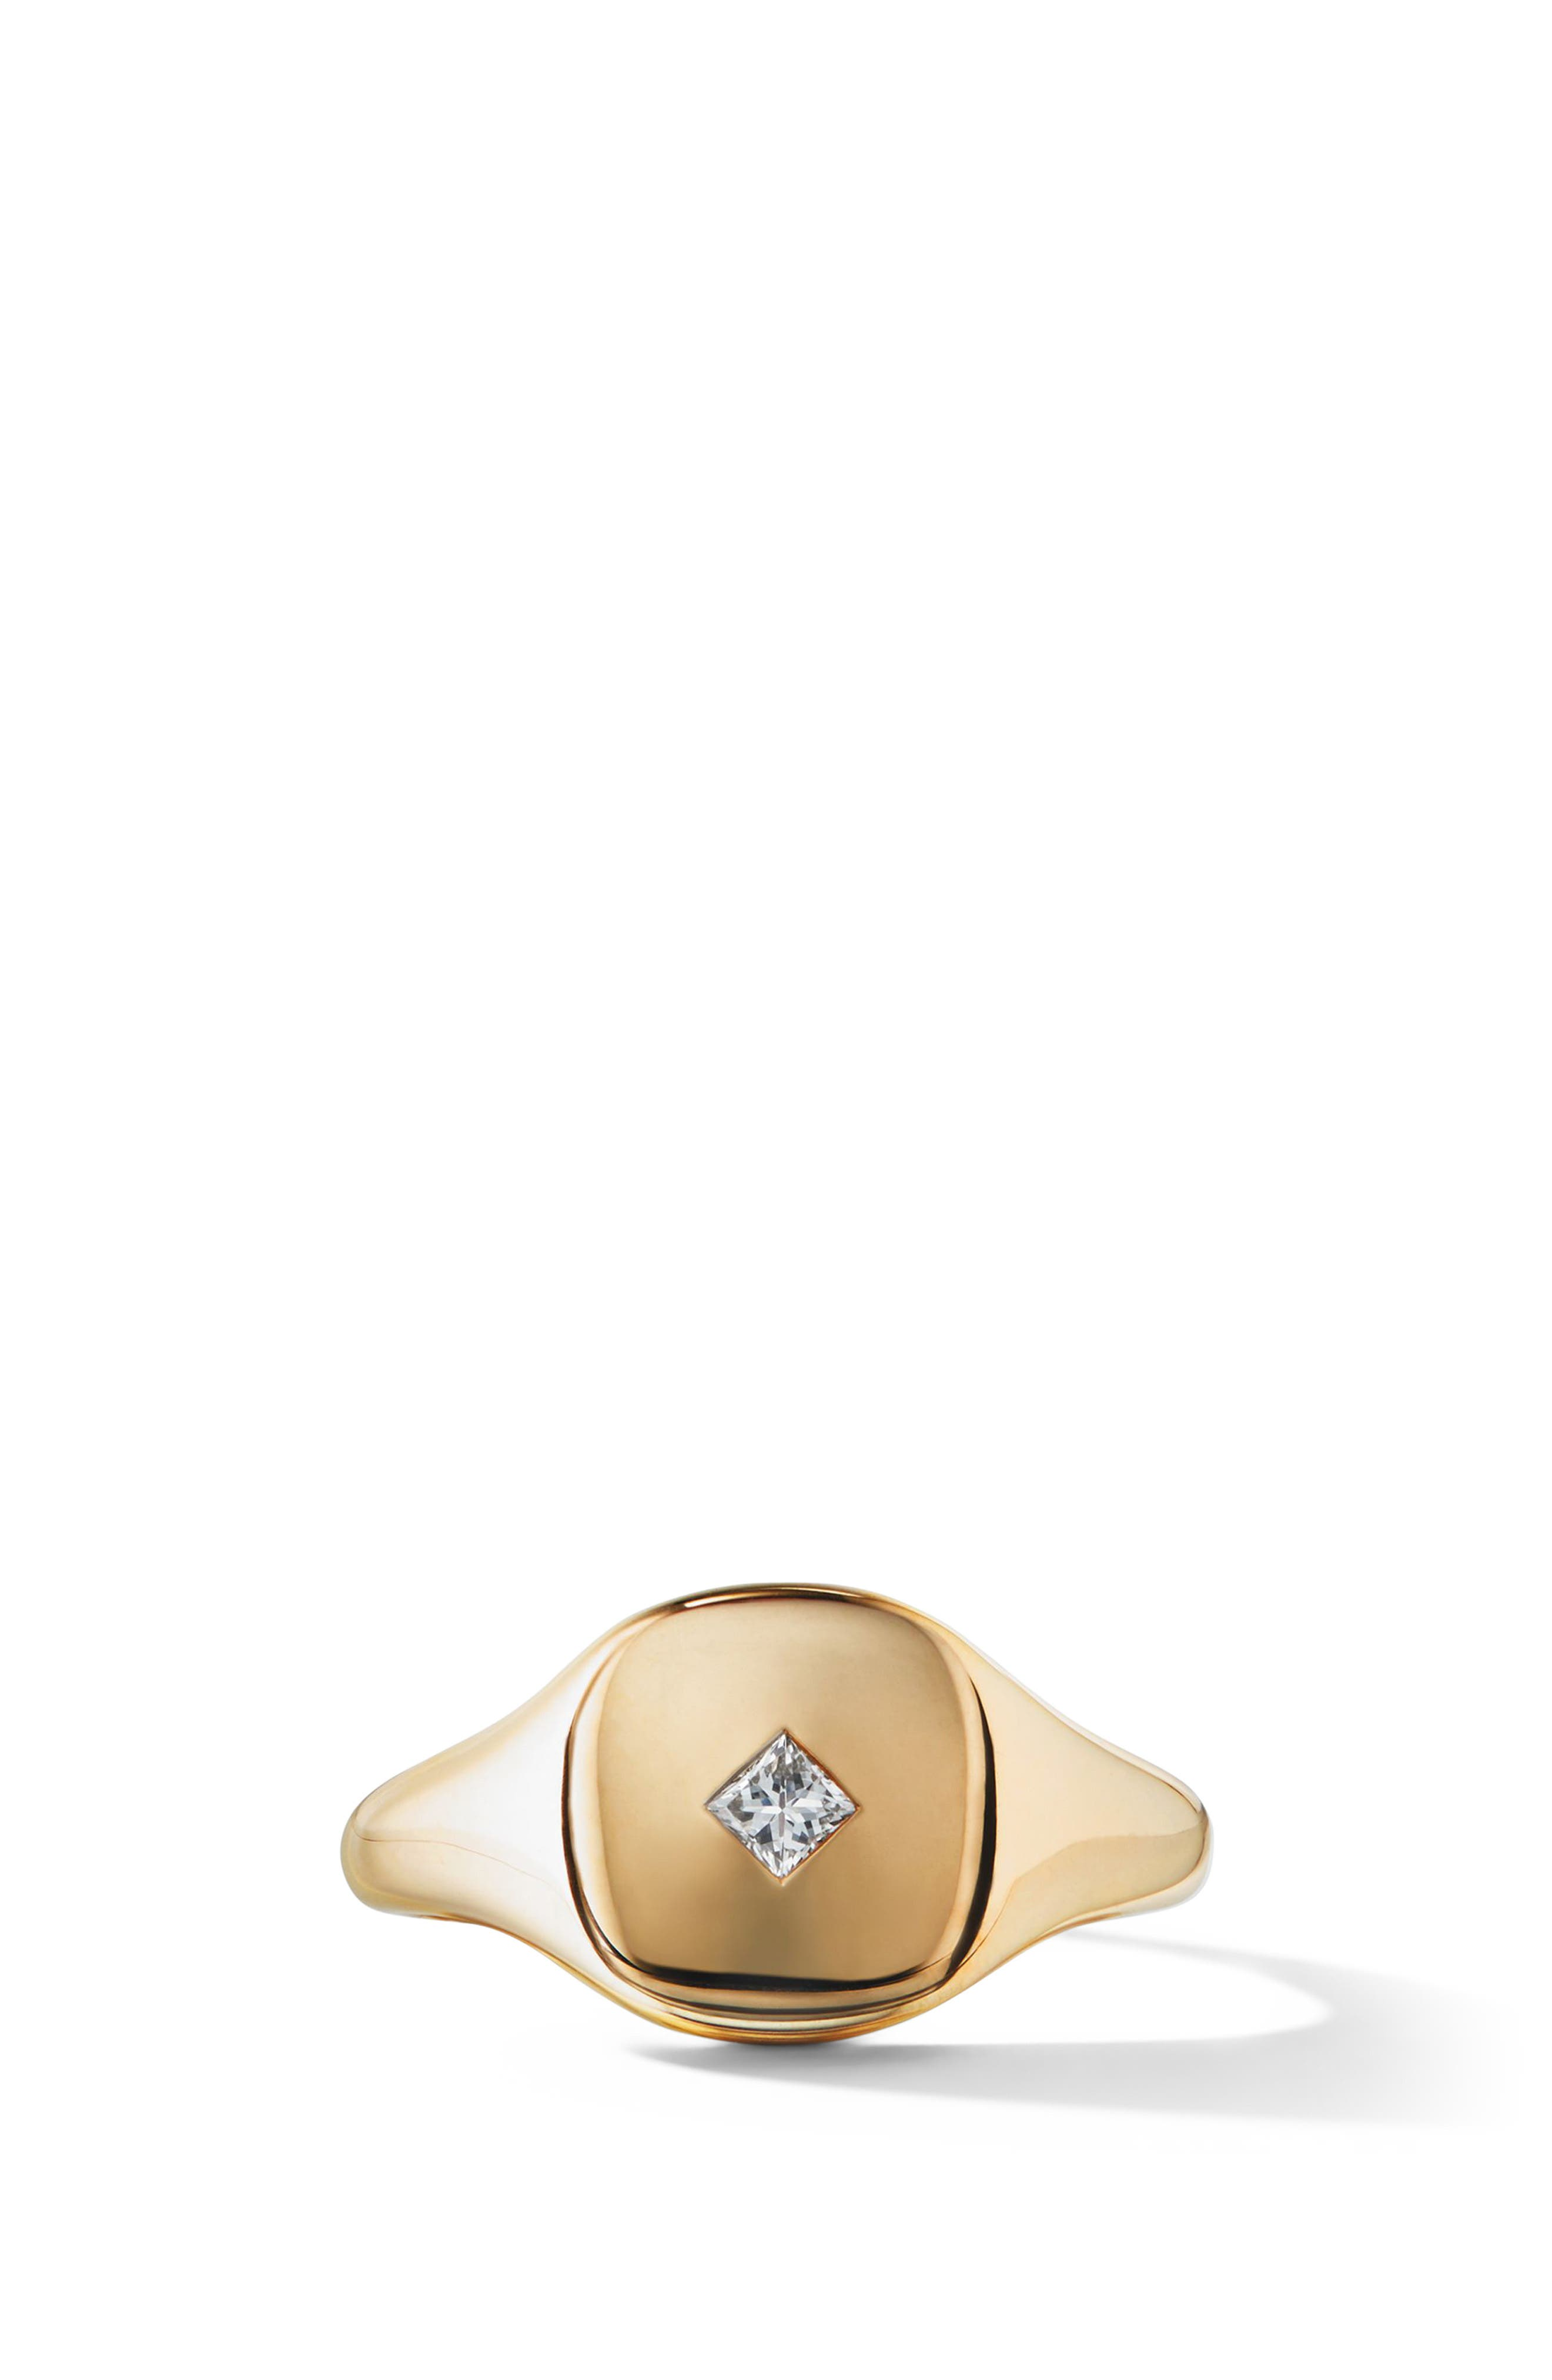 Cable Collectibles Mini Pinky Ring in 18K Gold with Princess Cut Diamond,                         Main,                         color, GOLD/ DIAMOND